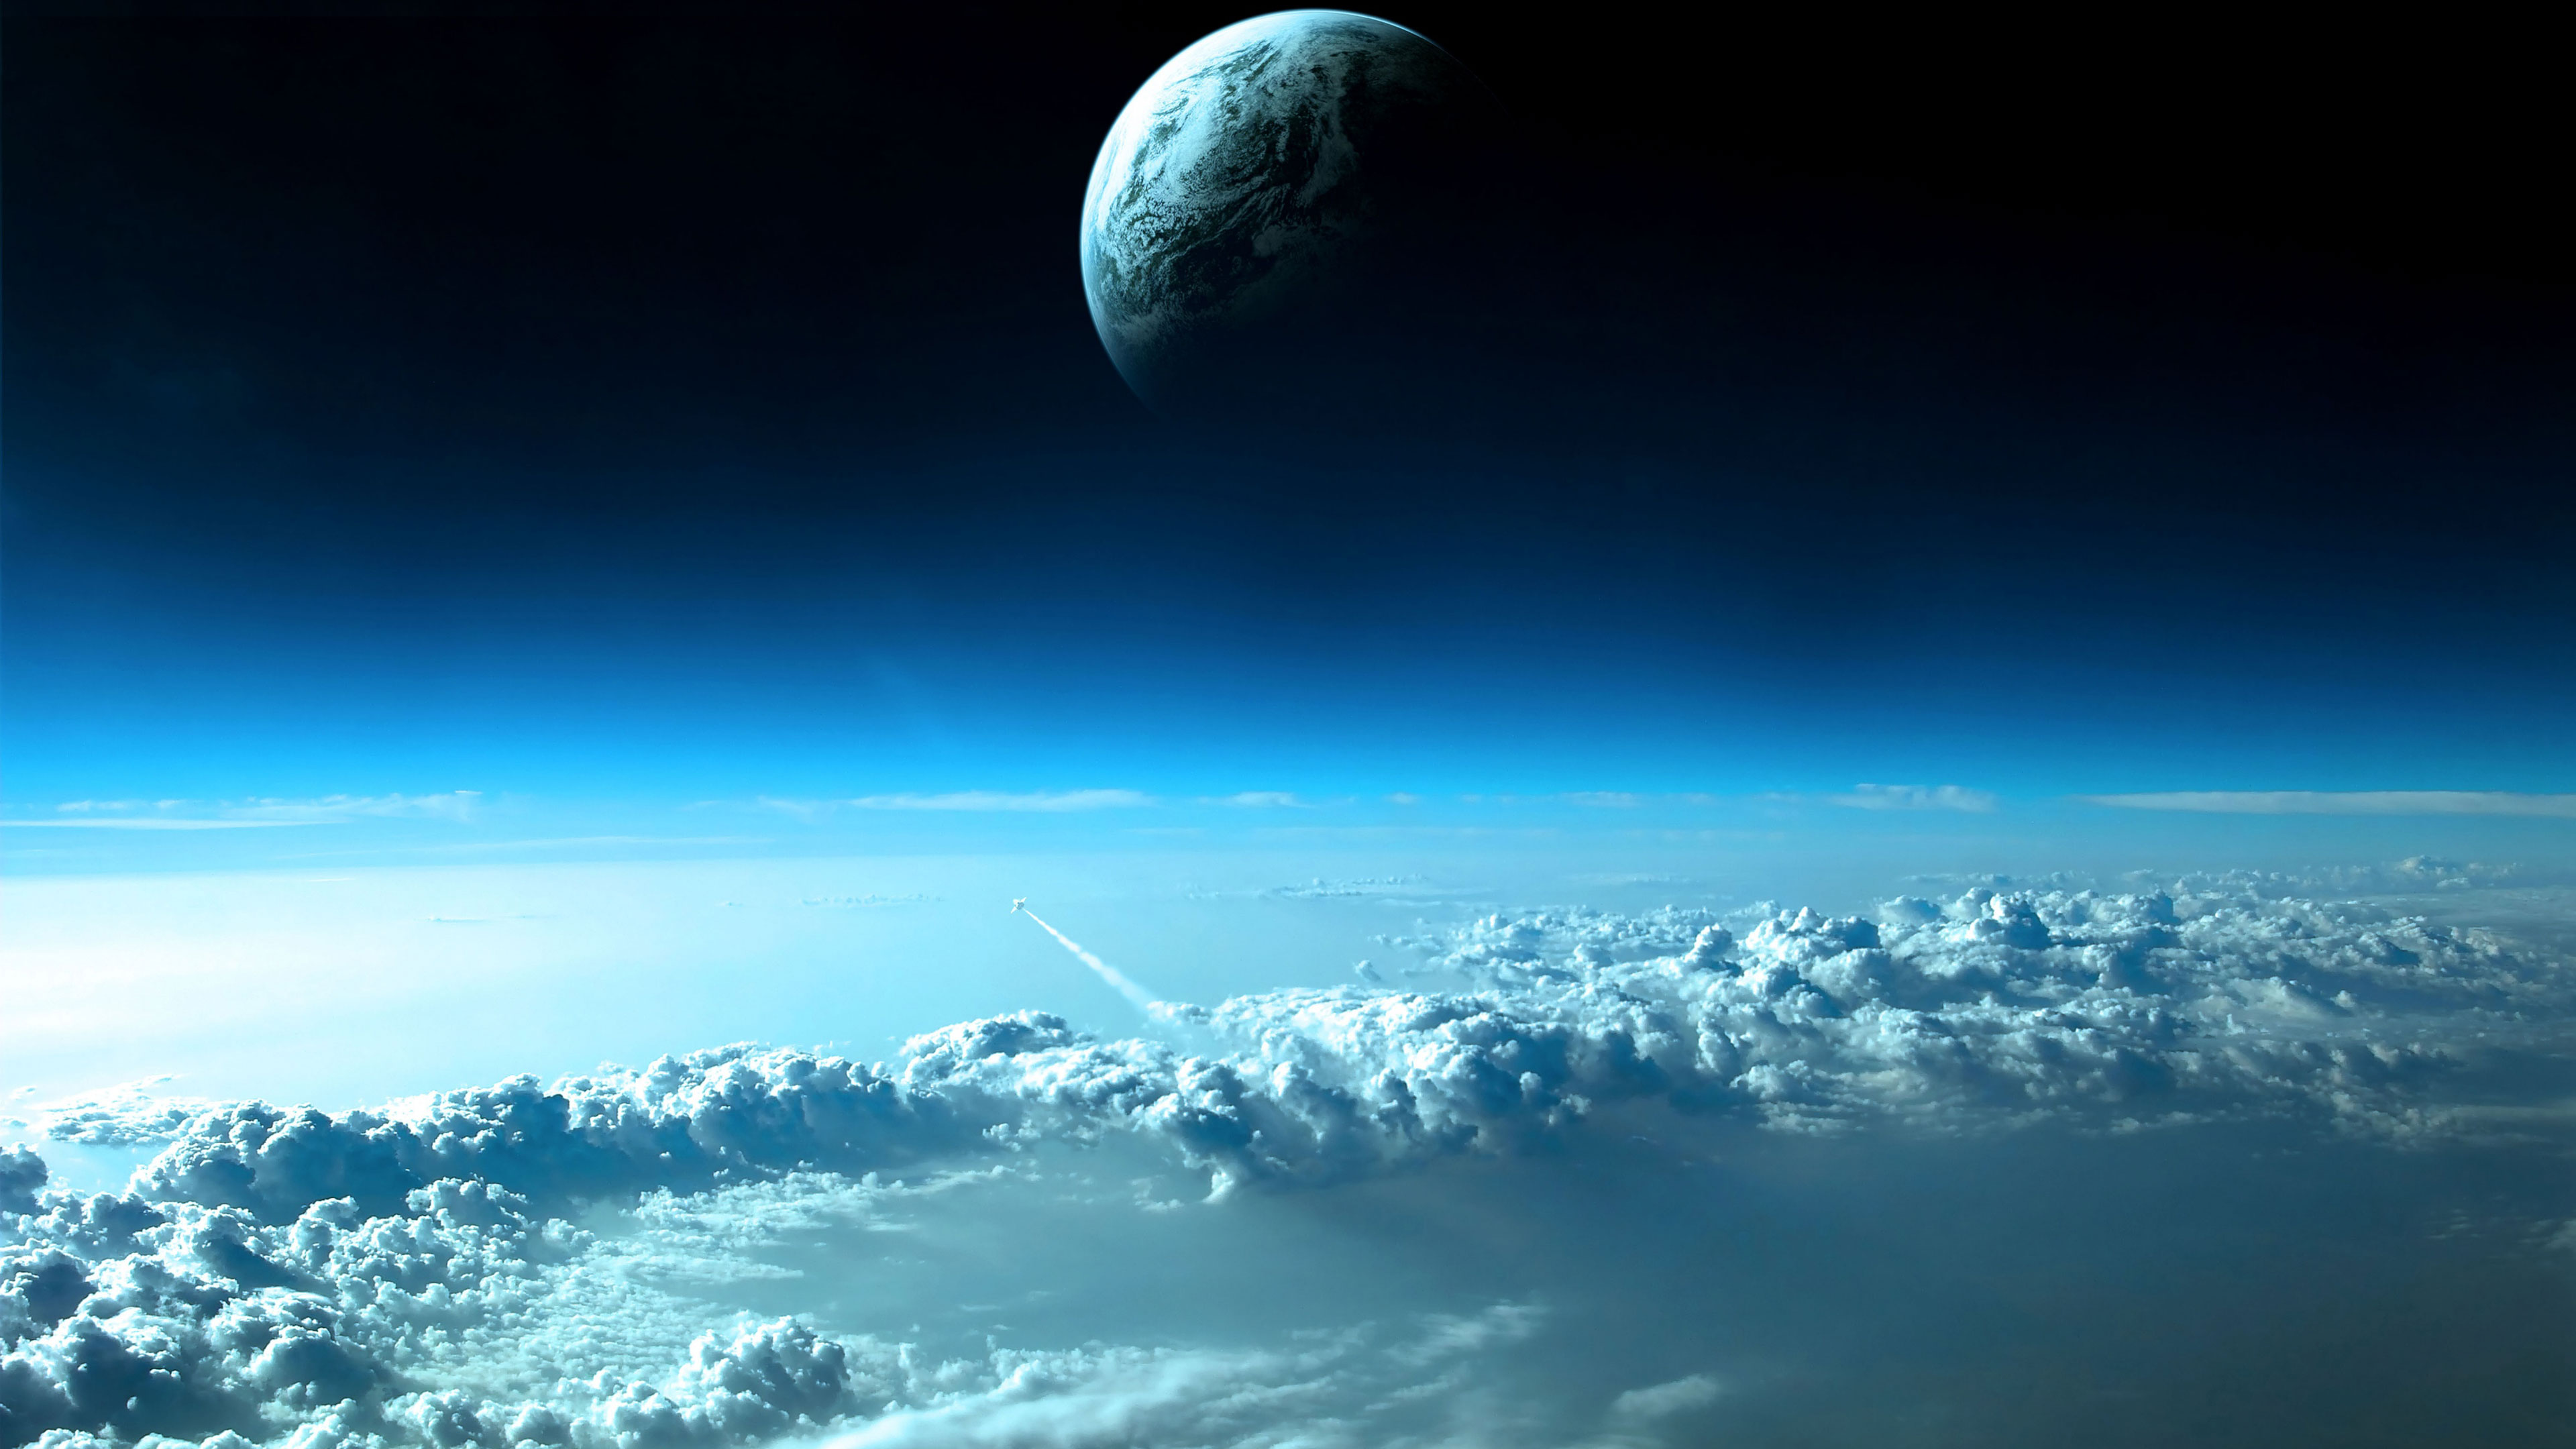 moon above the clouds hd wallpaper | wide screen wallpaper 1080p,2k,4k